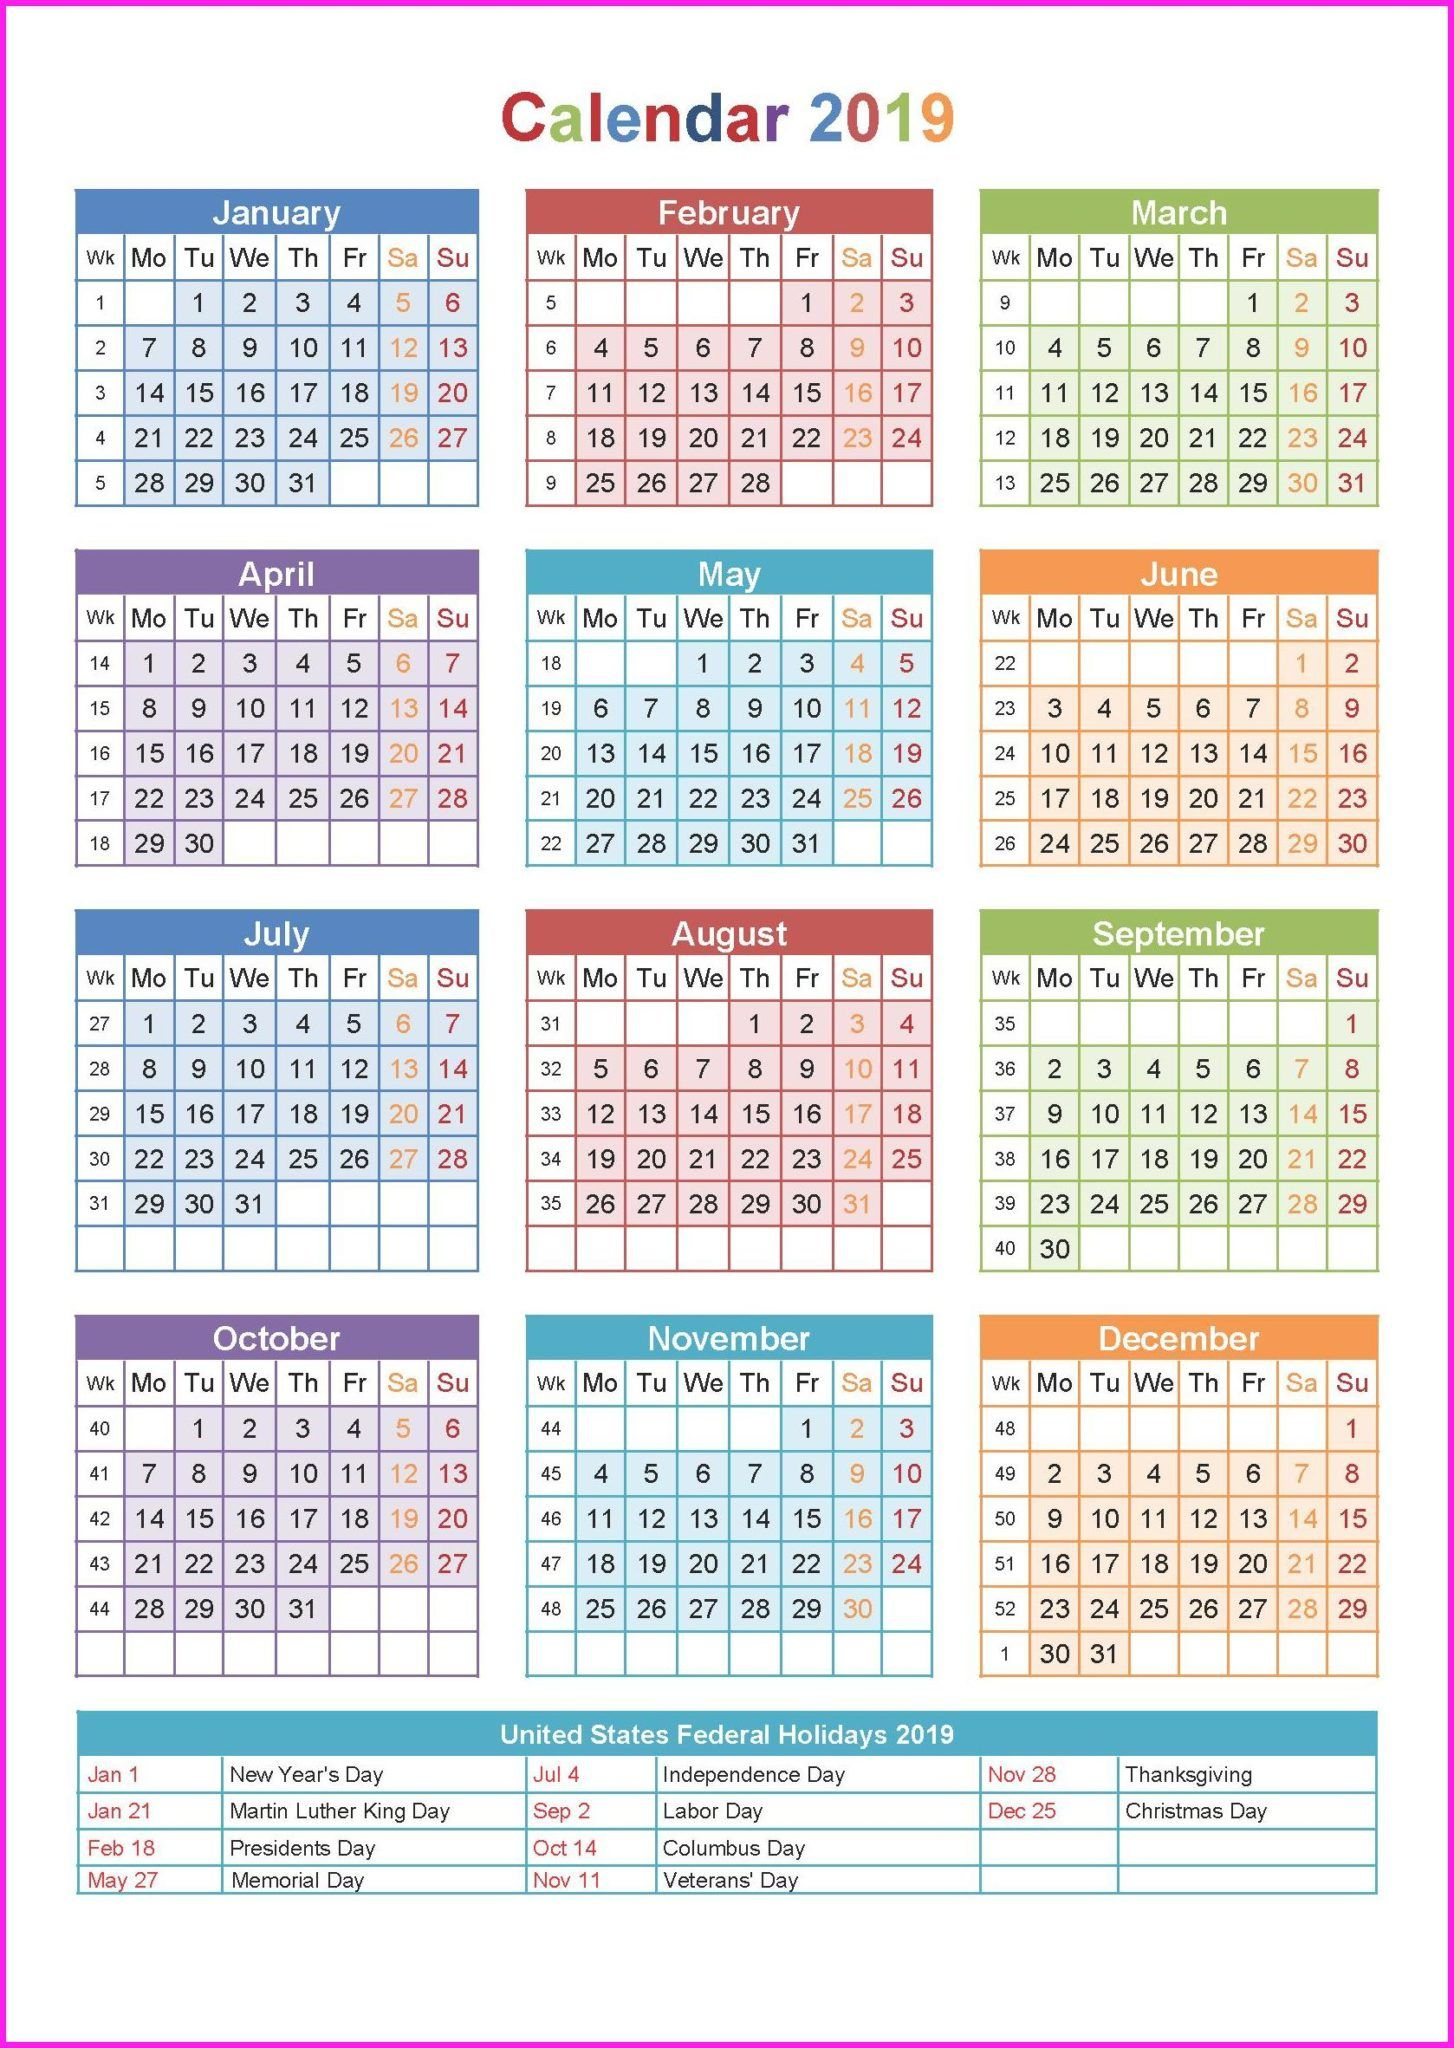 2019 Holiday Calendar Usa | Yearly Calendar In One Page | Yearly intended for 1 Page Calendar 2019-2020 With Major Holidays